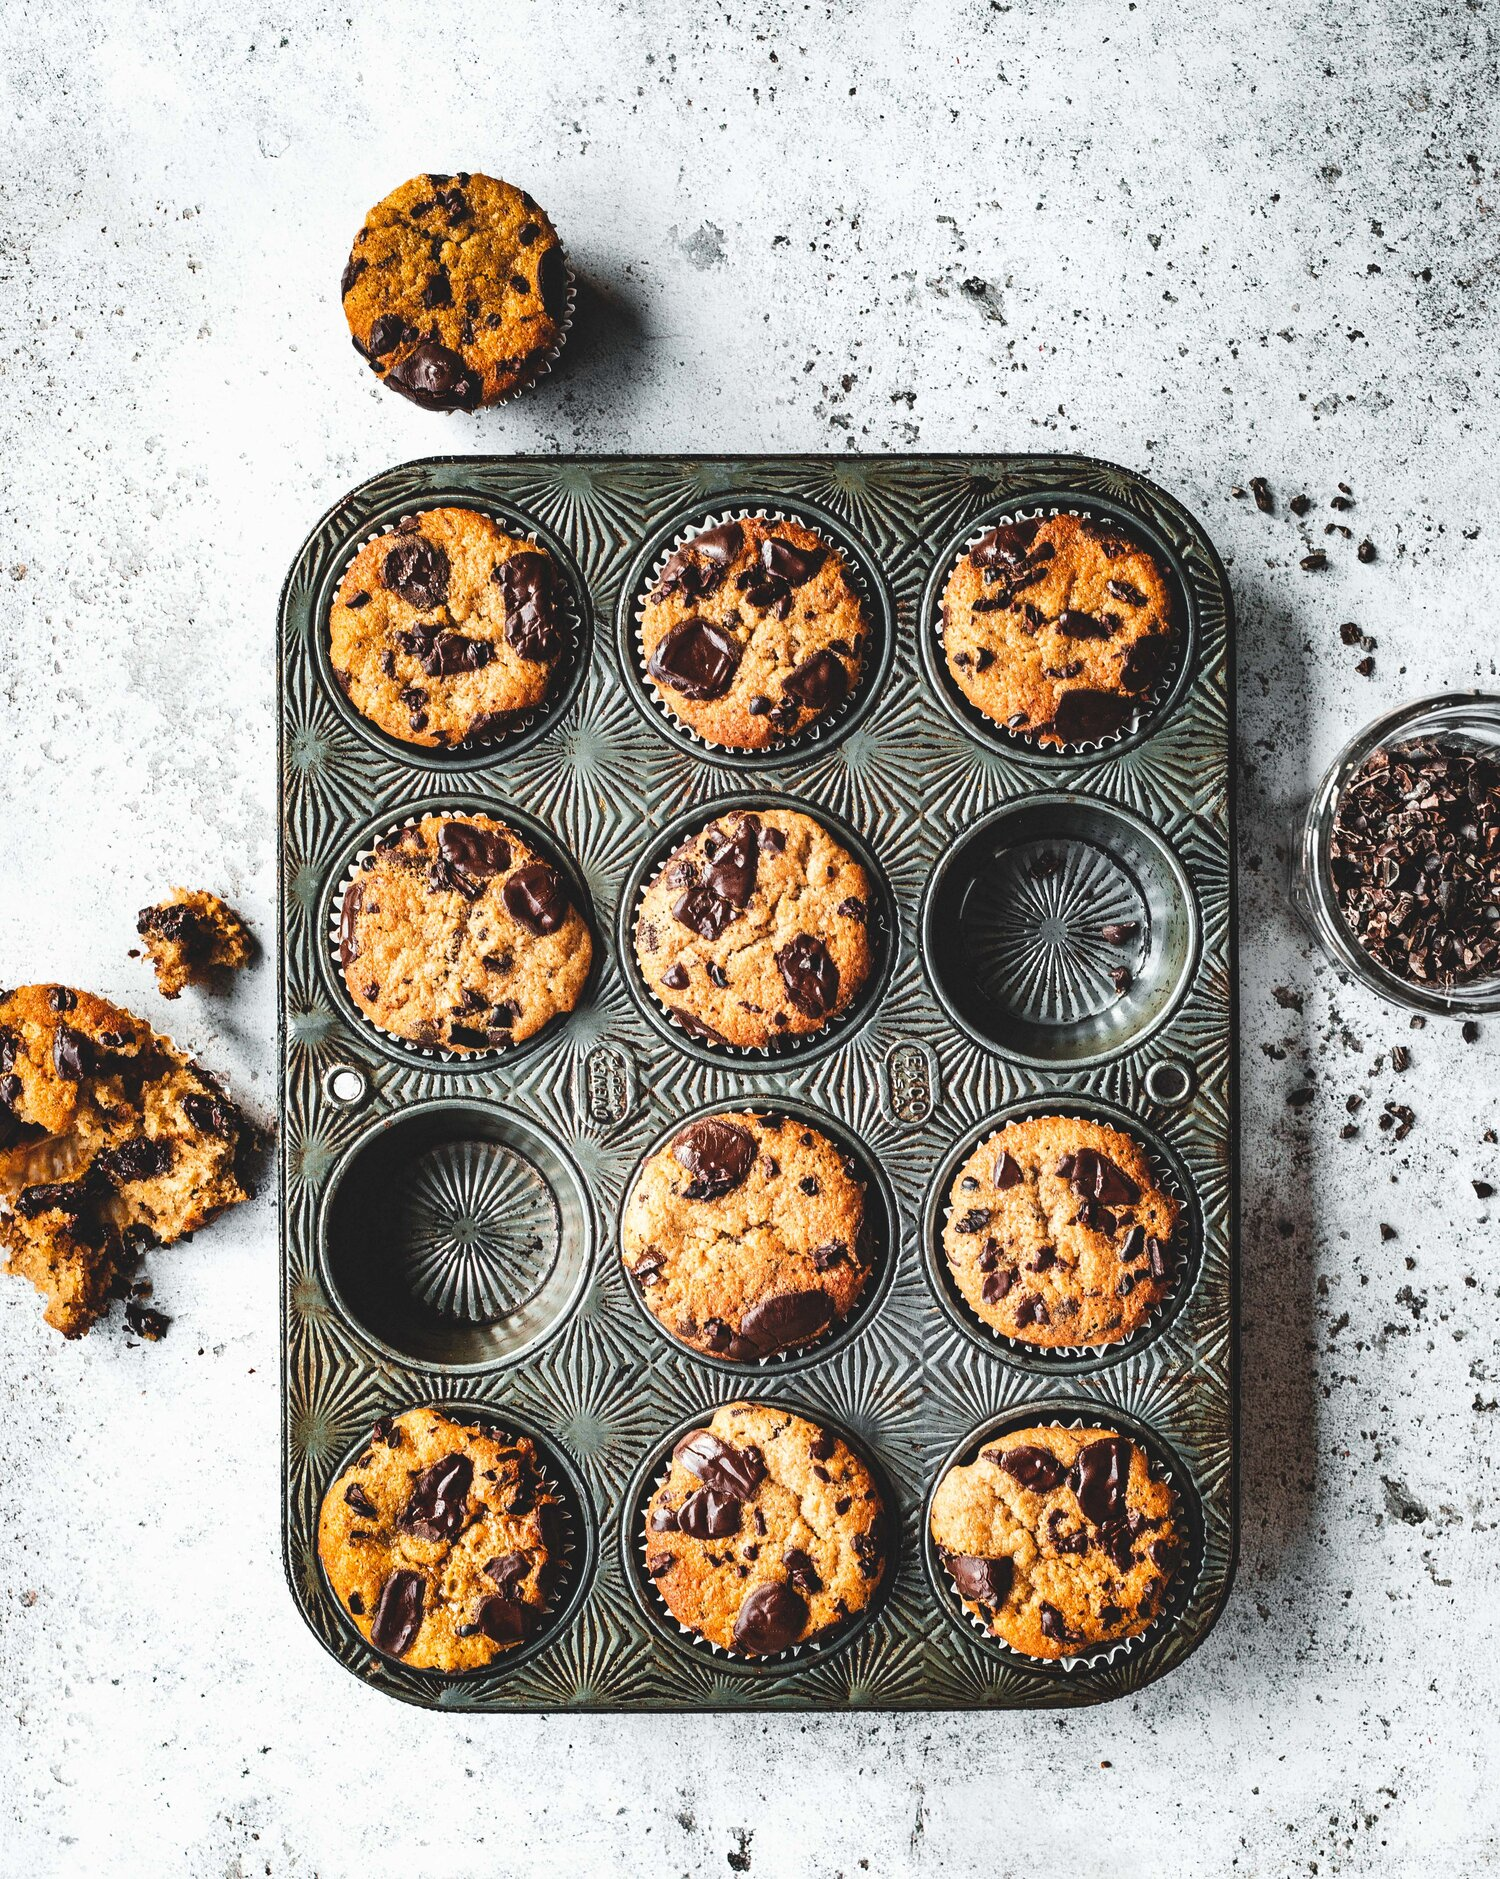 Sourdough Chocolate Chip Banana Bread Muffins The Boy Who Bakes